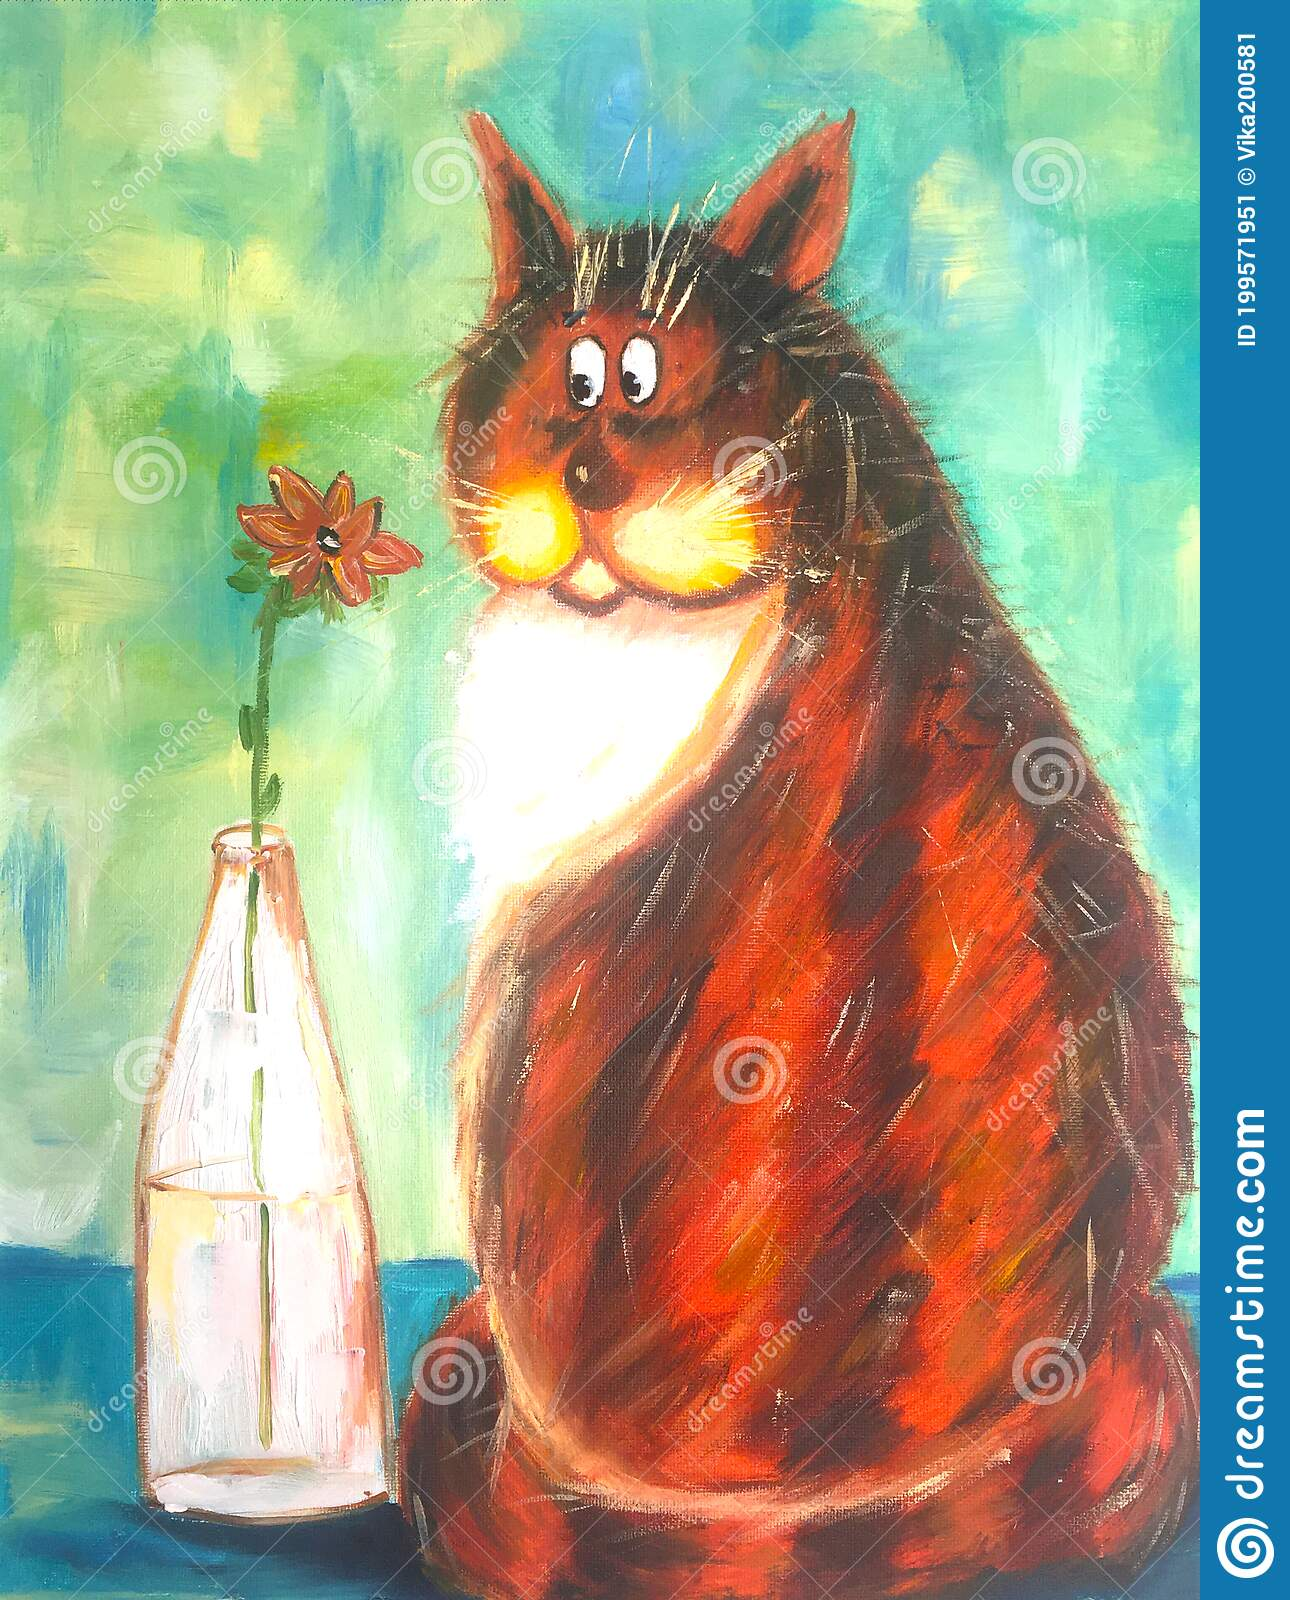 Portrait of a red cat with flowers dandelions cute kitten wall decor Cat fine art oil painting on canvas bright wall decor in the nursery